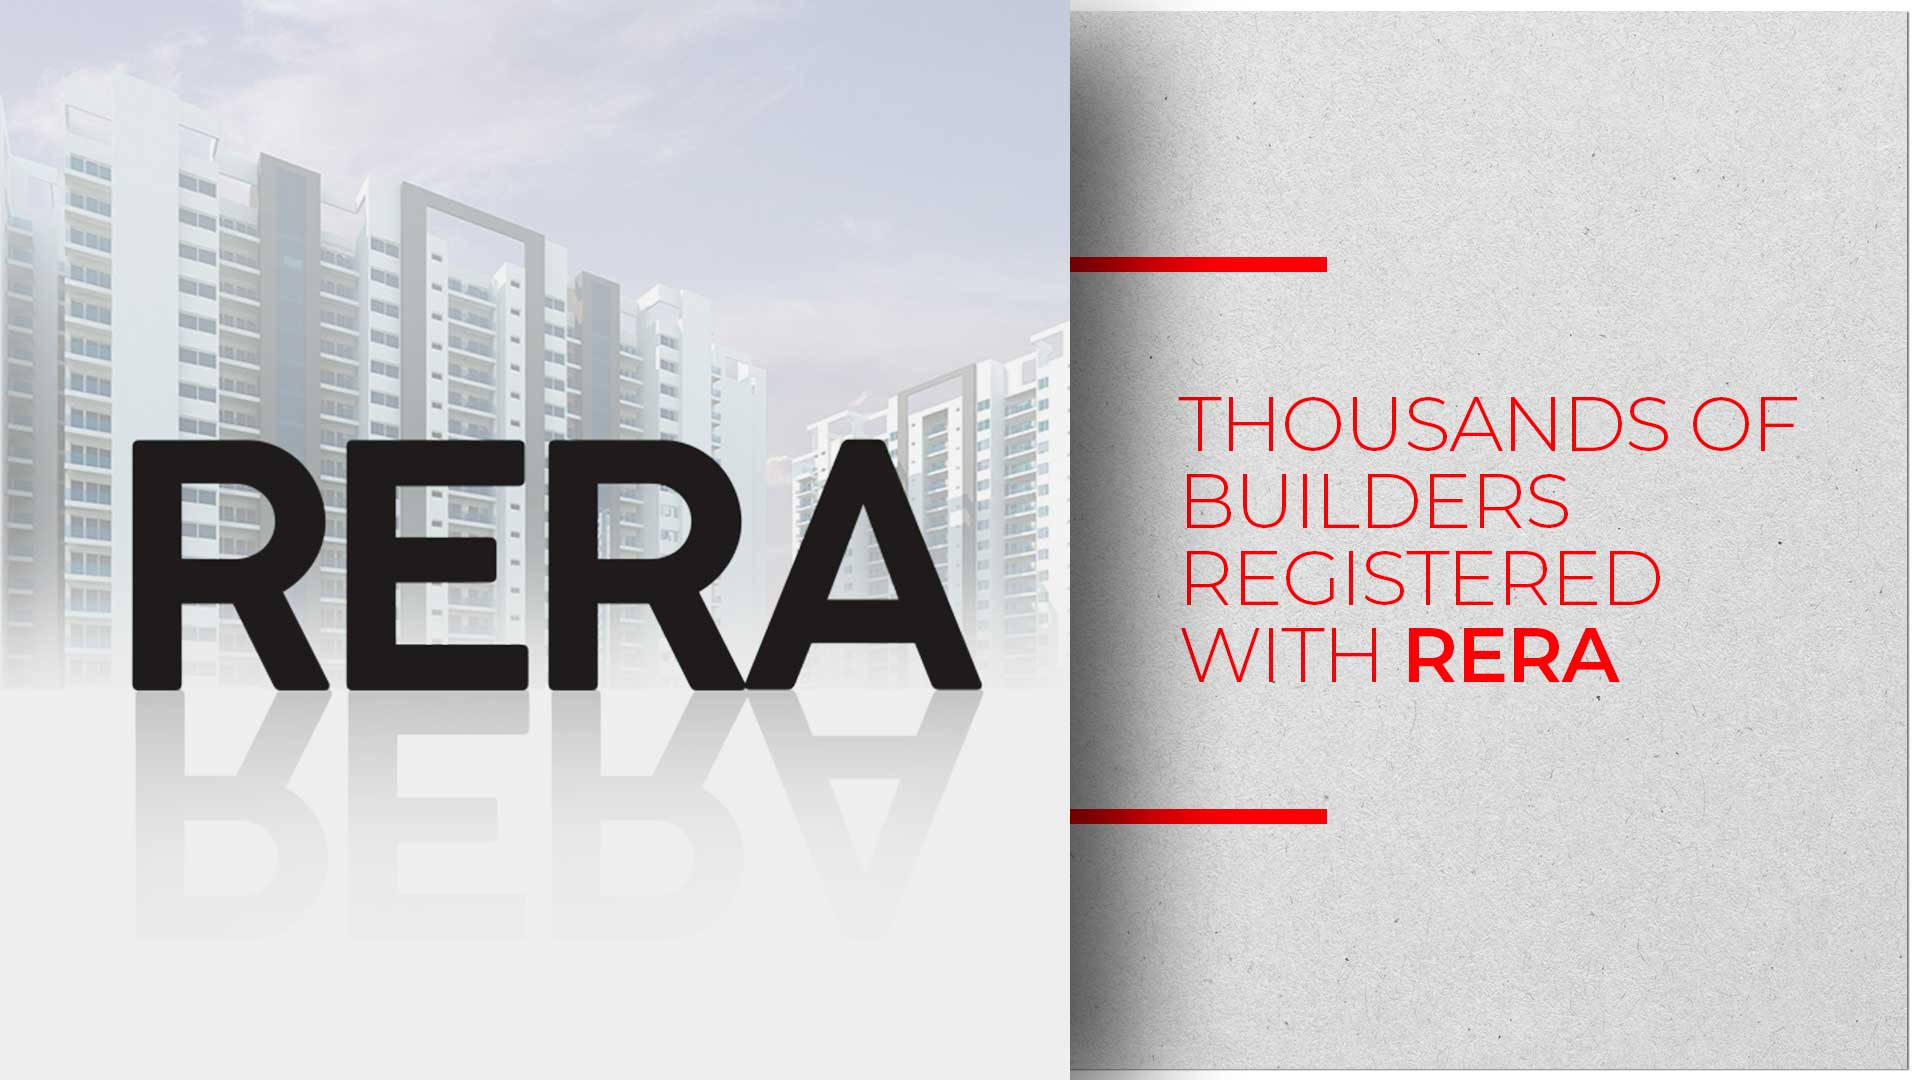 34,000 Real Estate Projects Have Registered With RERA In India